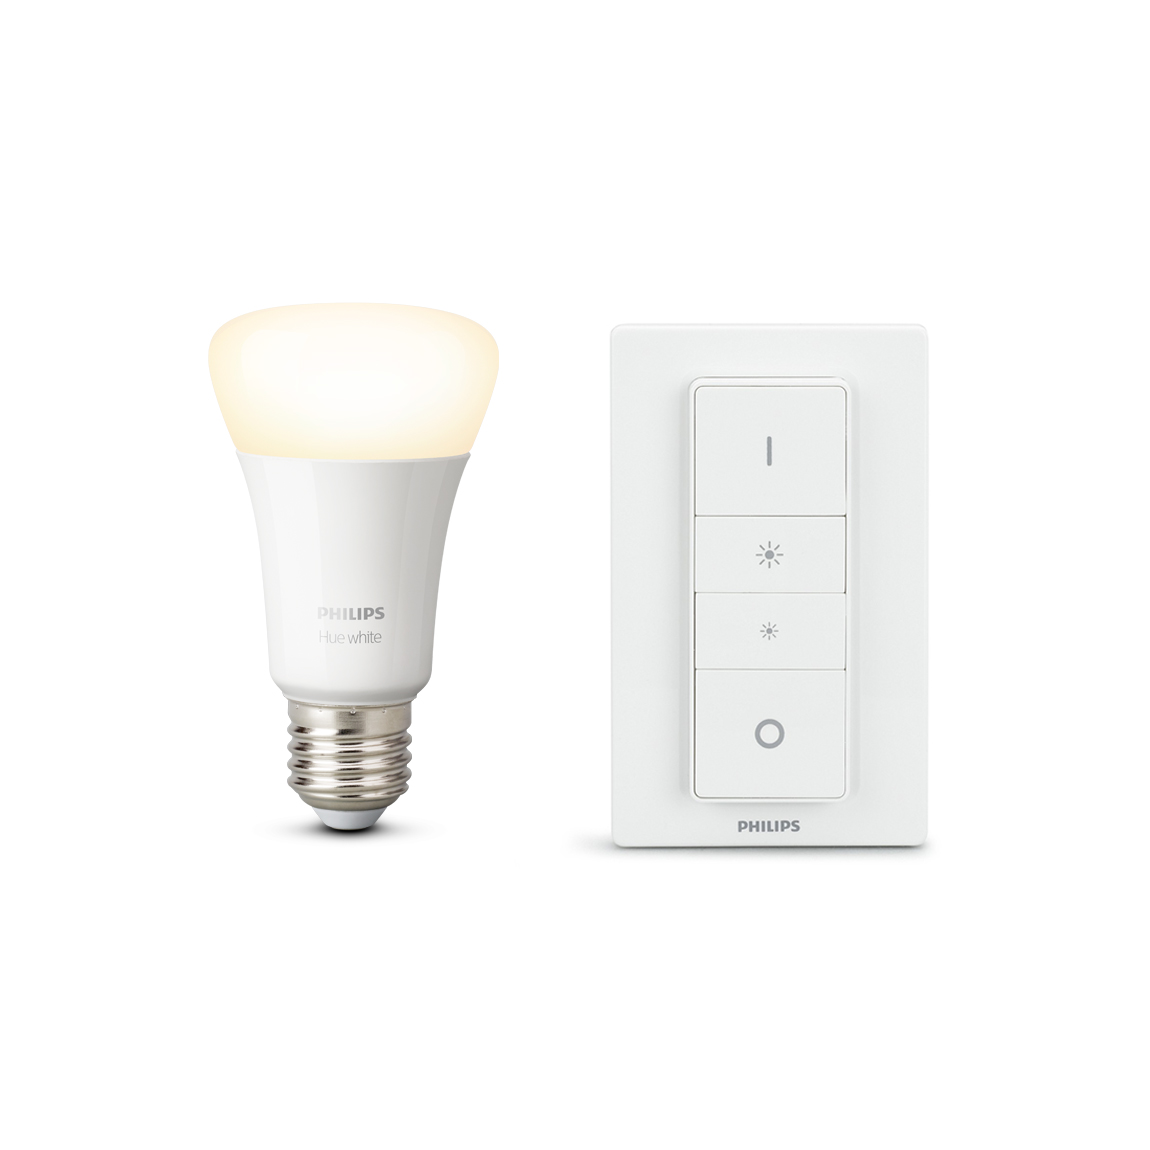 Philips Hue White E27 Bluetooth Dimmer Kit - Lample inkl. Dimmschalter - Weiß